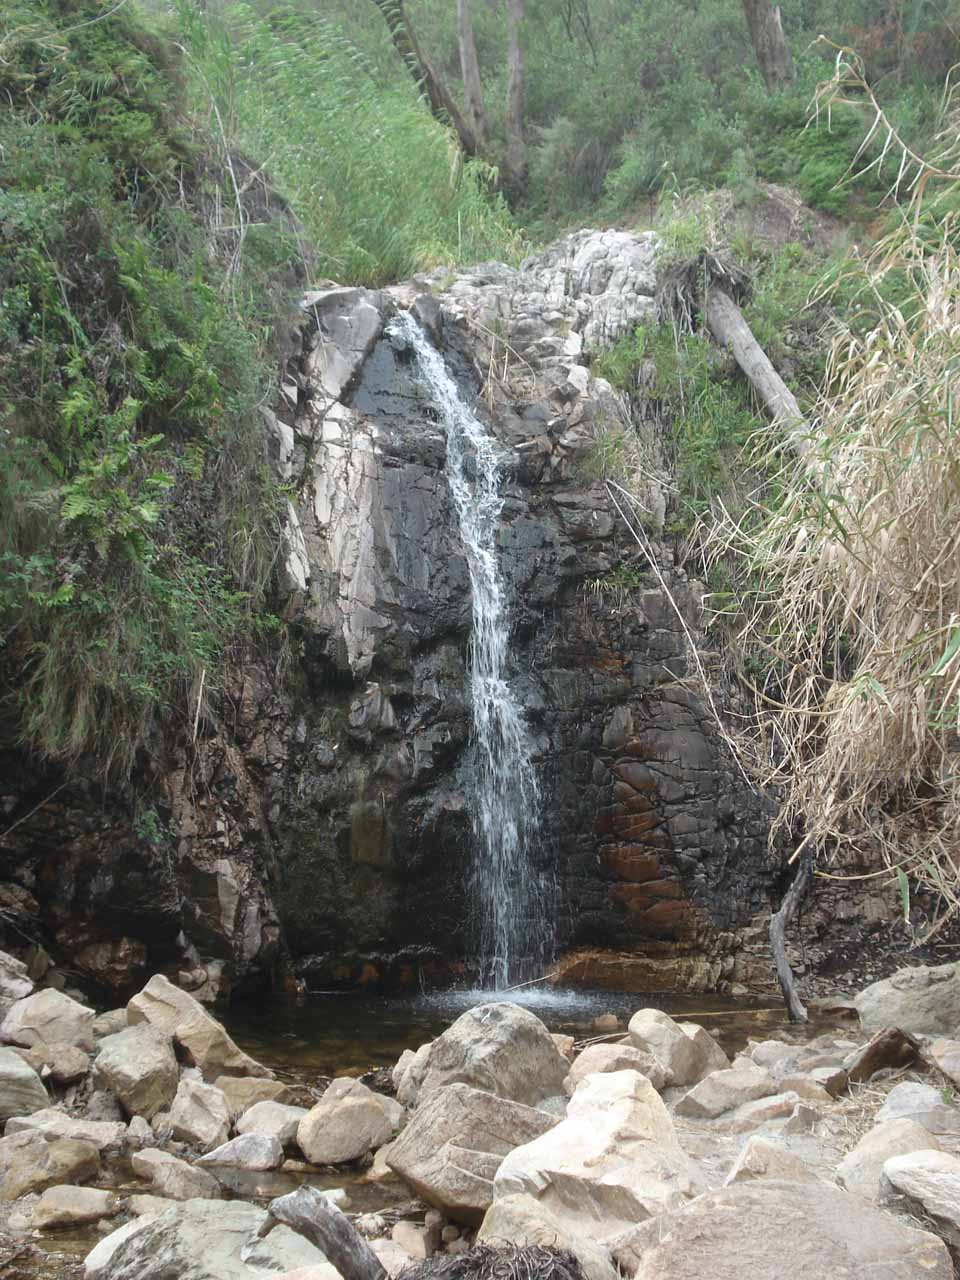 This was the Second Falls of Waterfall Gully, which was further upstream of the First (and main) Falls